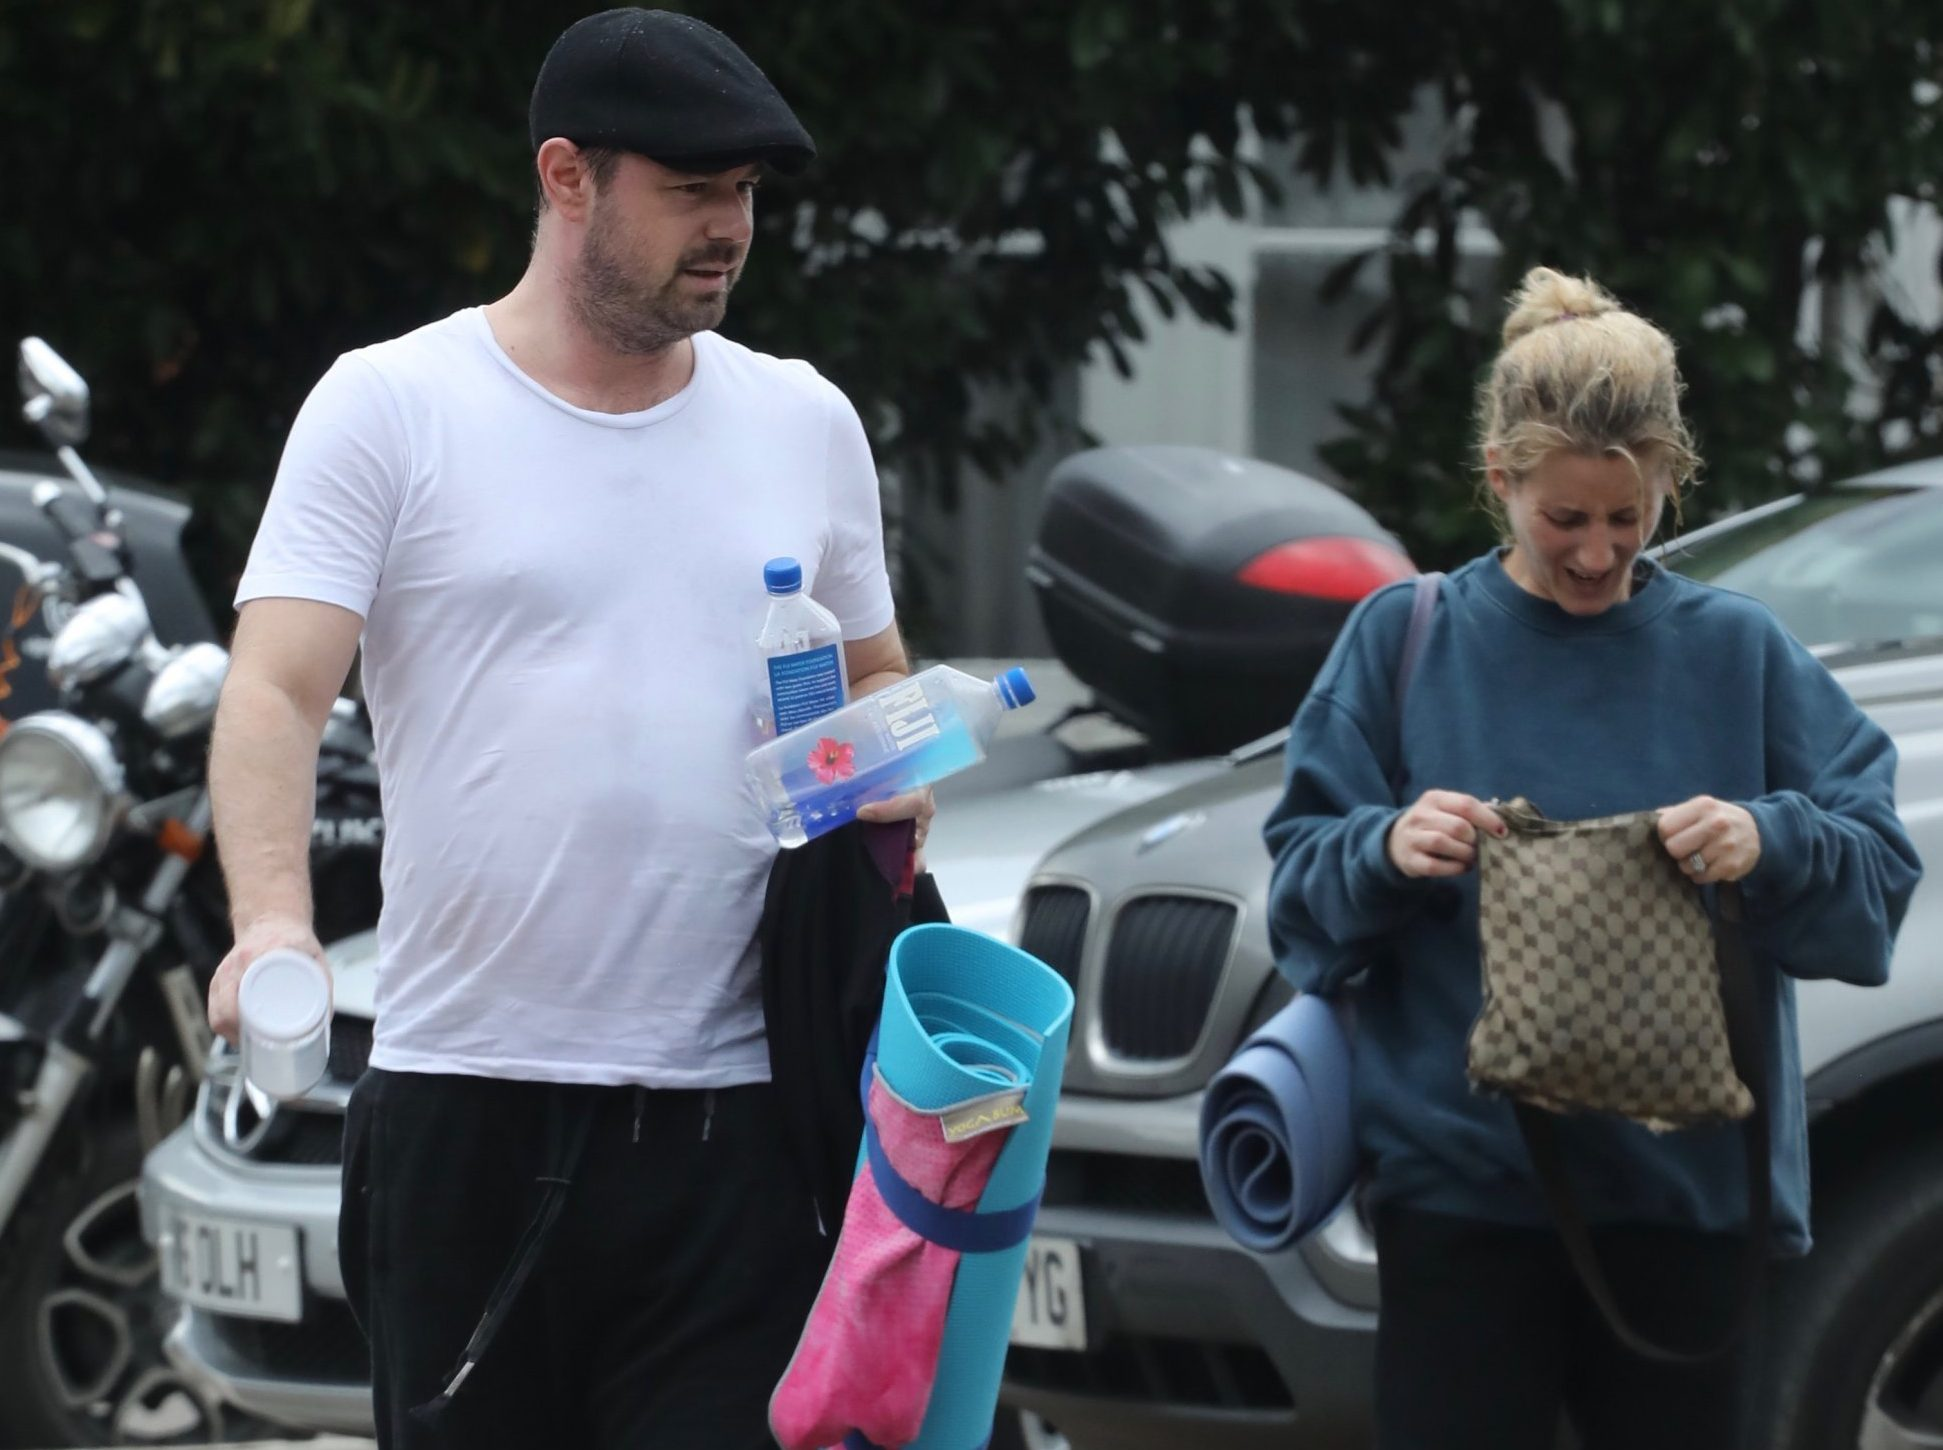 EastEnders tough guy Danny Dyer was seen clutching a Love Island water bottle at a yoga class with wife Jo Mas.